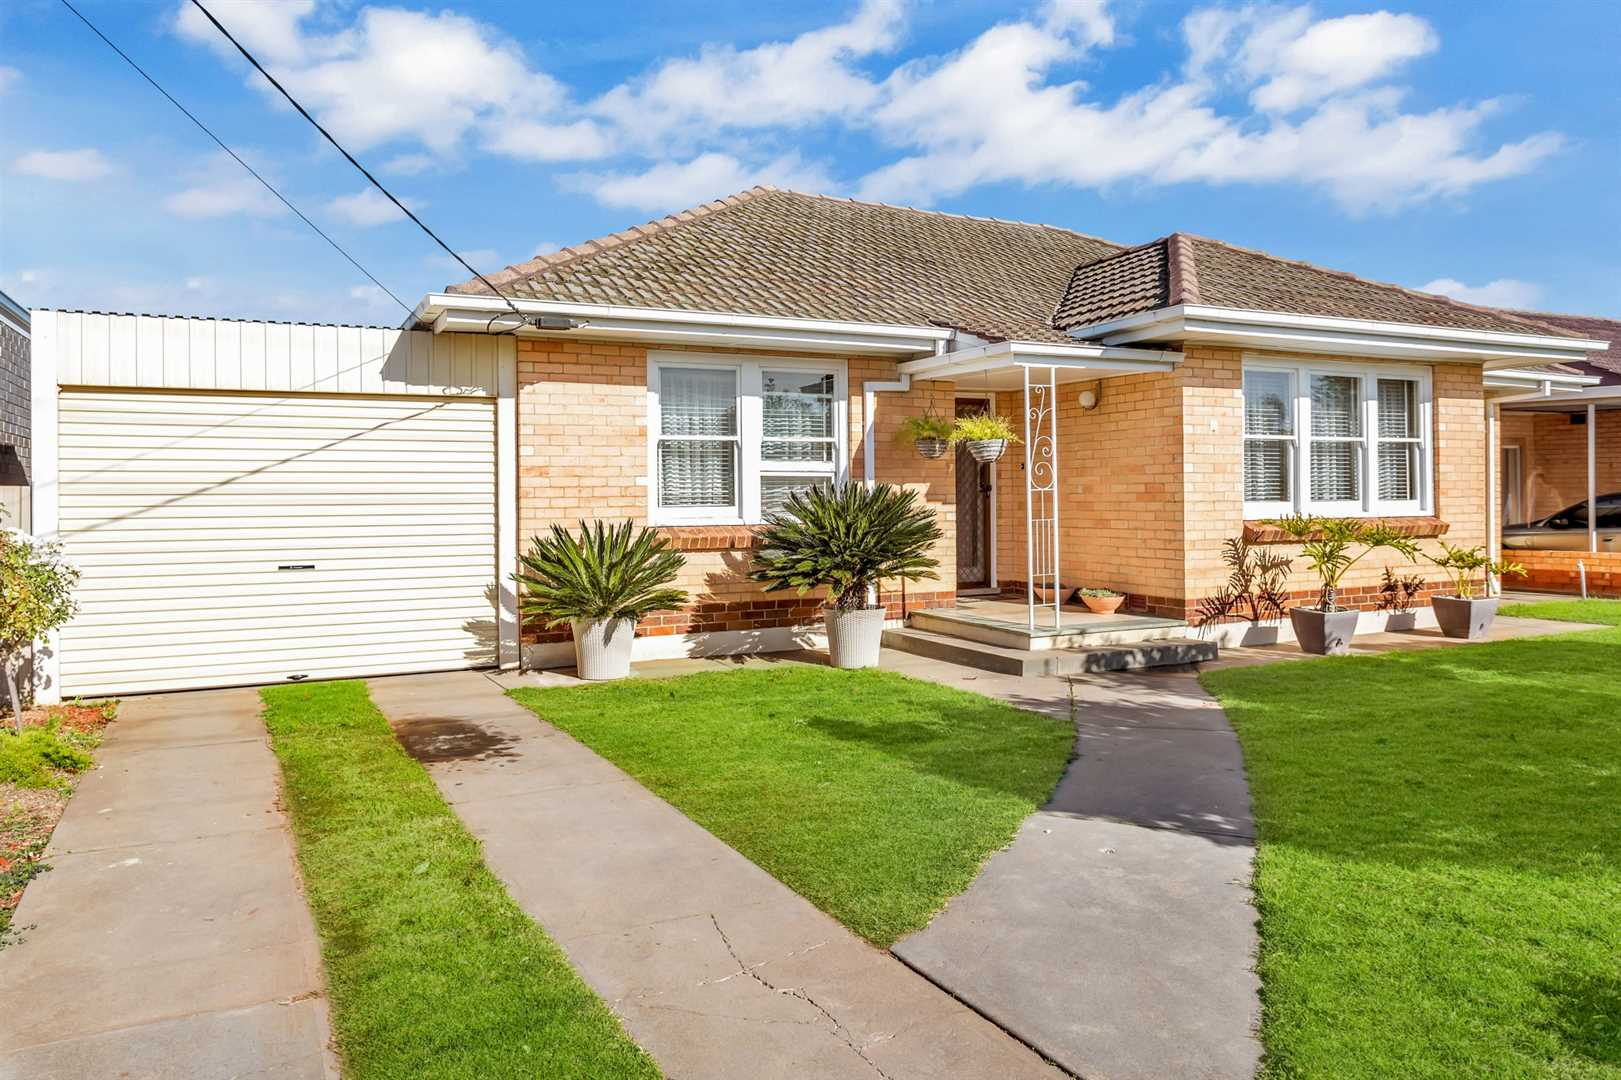 Sold at Auction! Buyers Waiting! ph 0412 844 738